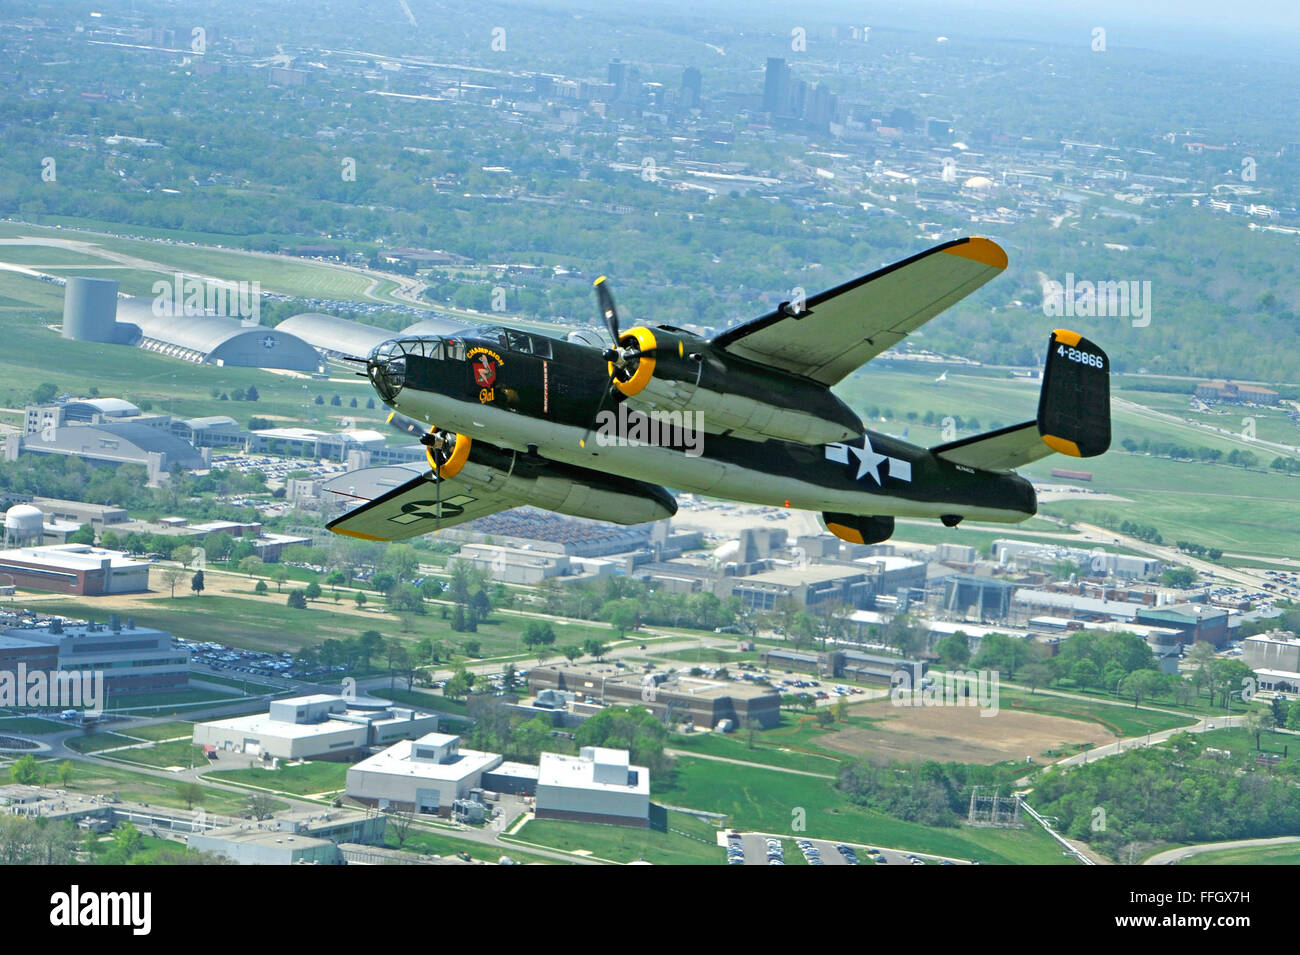 The Champaign Gal B-25 Mitchell bomber performs a flyby over the National Museum of the U.S. Air Force in honor - Stock Image